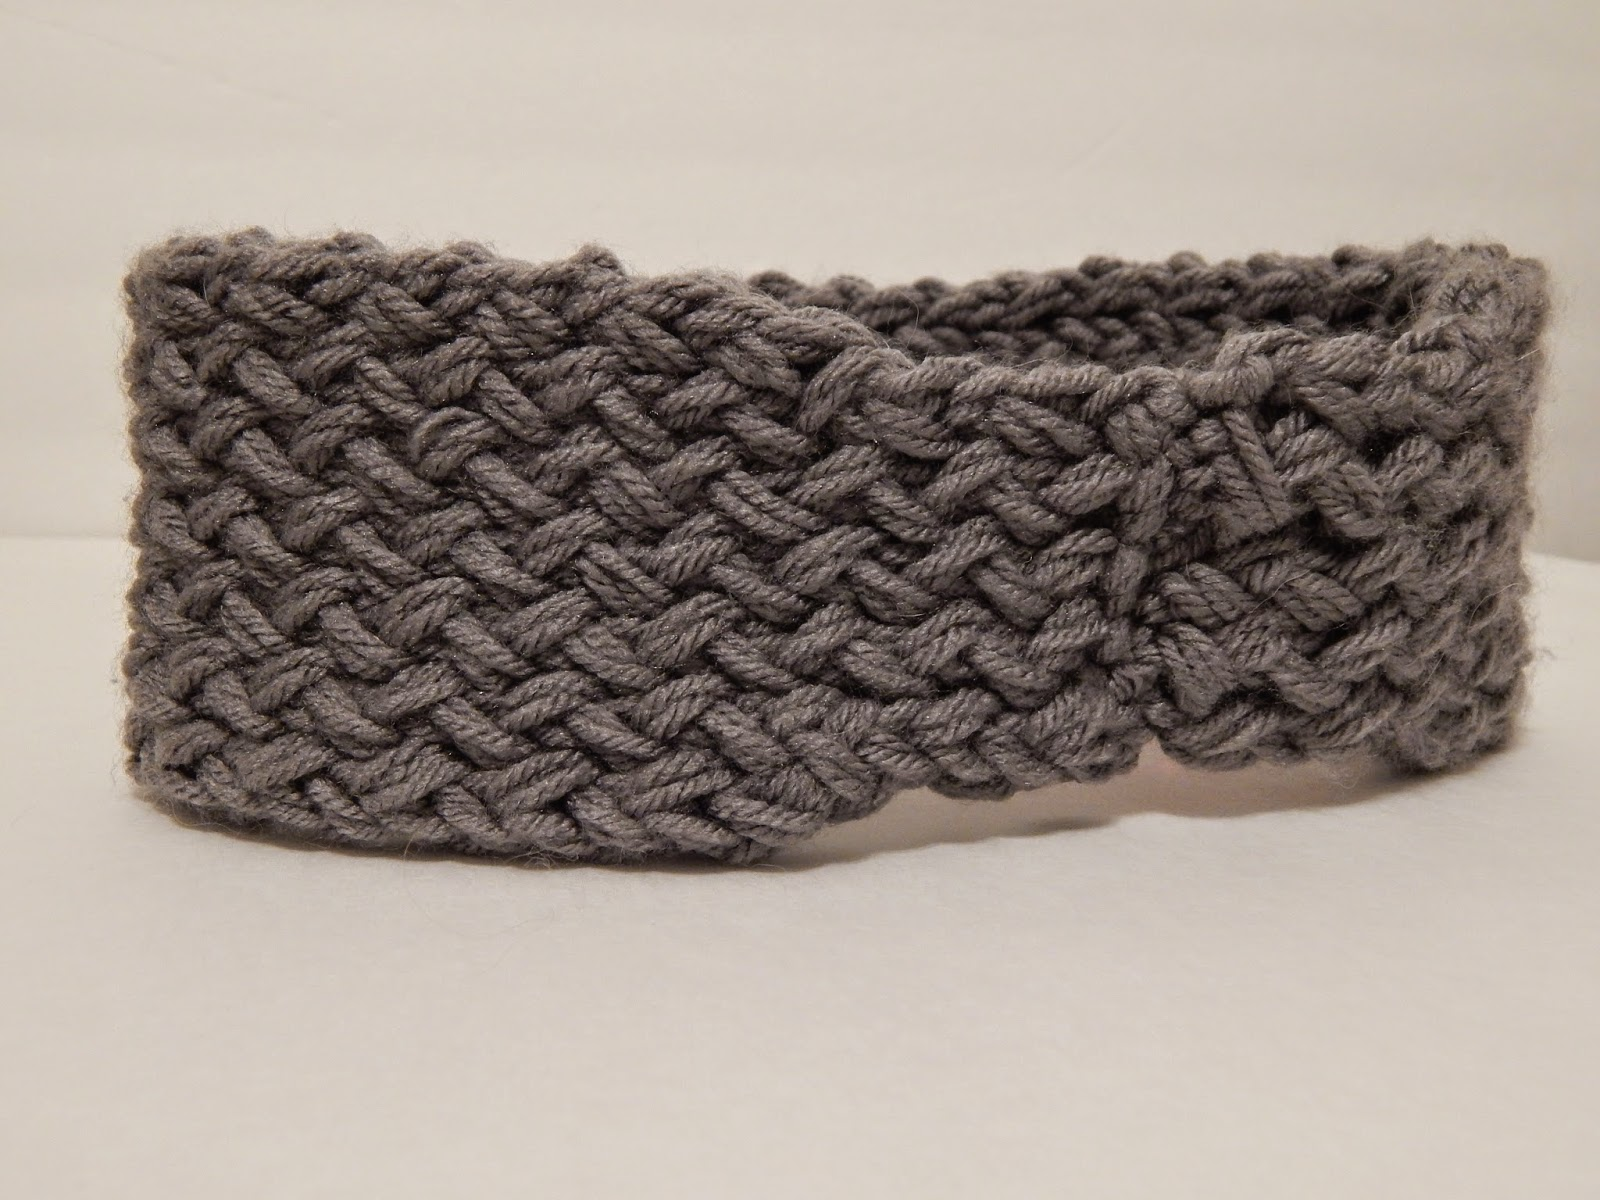 Loom Knitting Pattern Headband : Jovial Knits: Loom Knit Reversible Super Chunky Headband